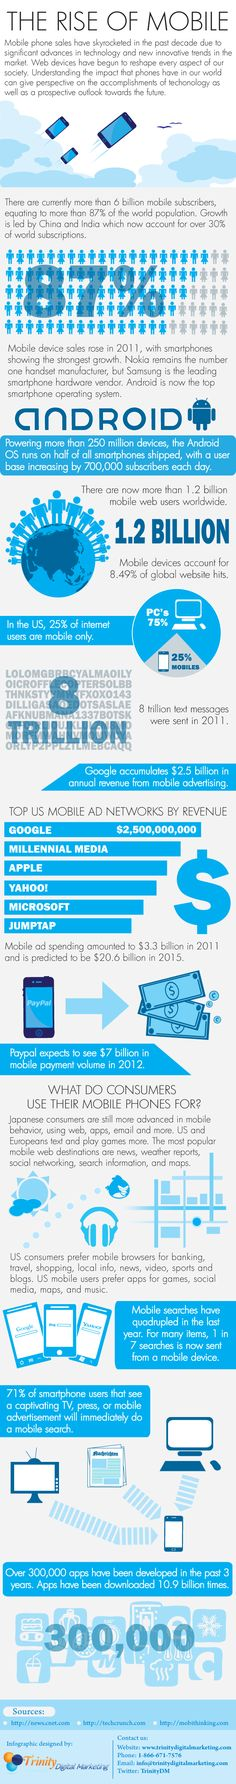 The Rise of Mobile.   Sh*tty infographic, impressive stats…      Saw it here: www.digitalbuzzblog.com/infographic-2012-mobile-growth-statistics/